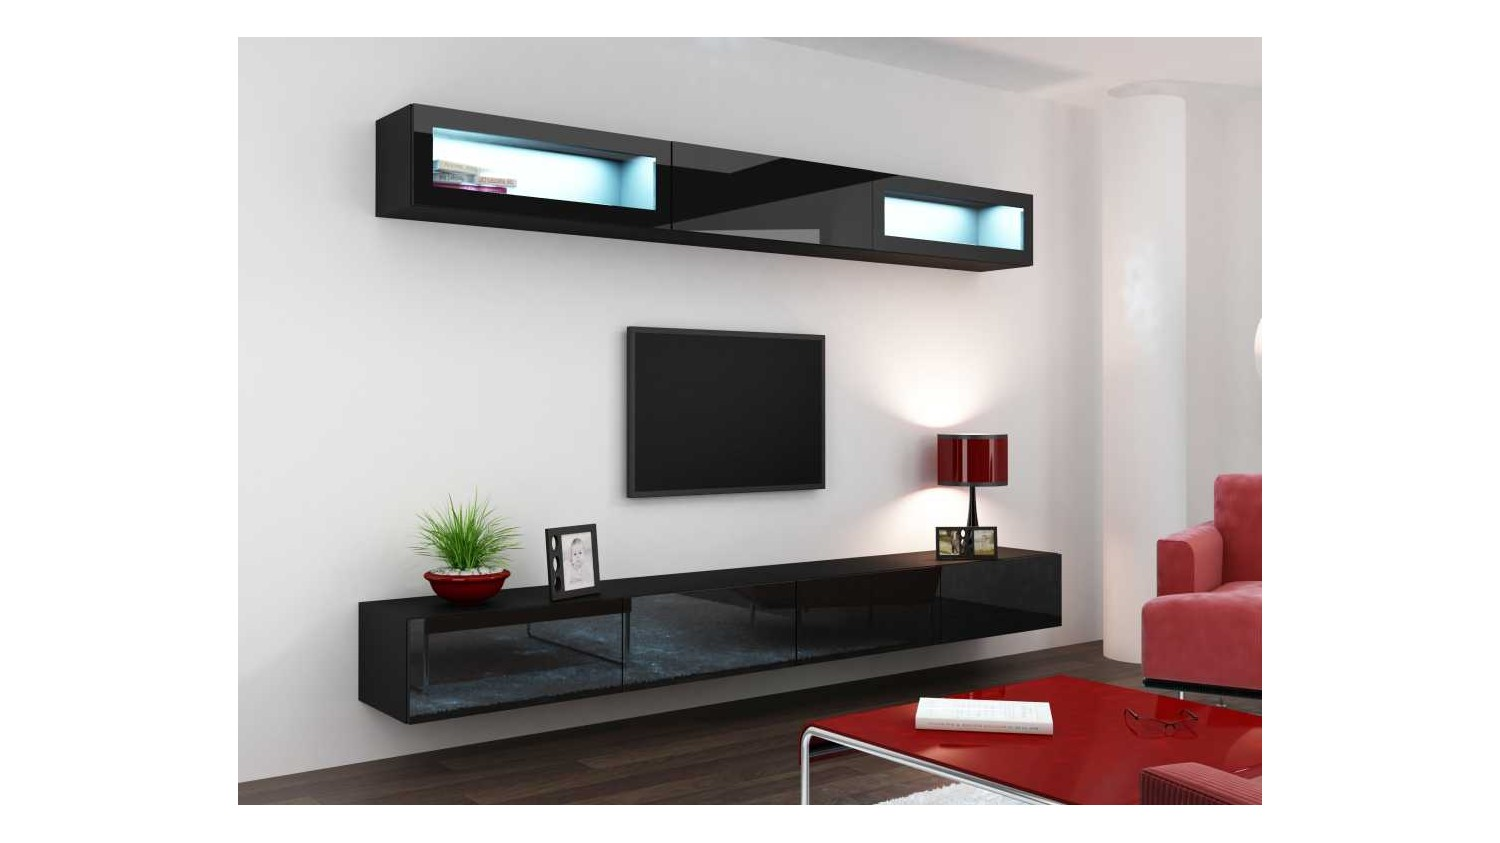 meuble sous tv suspendu id es de d coration int rieure french decor. Black Bedroom Furniture Sets. Home Design Ideas